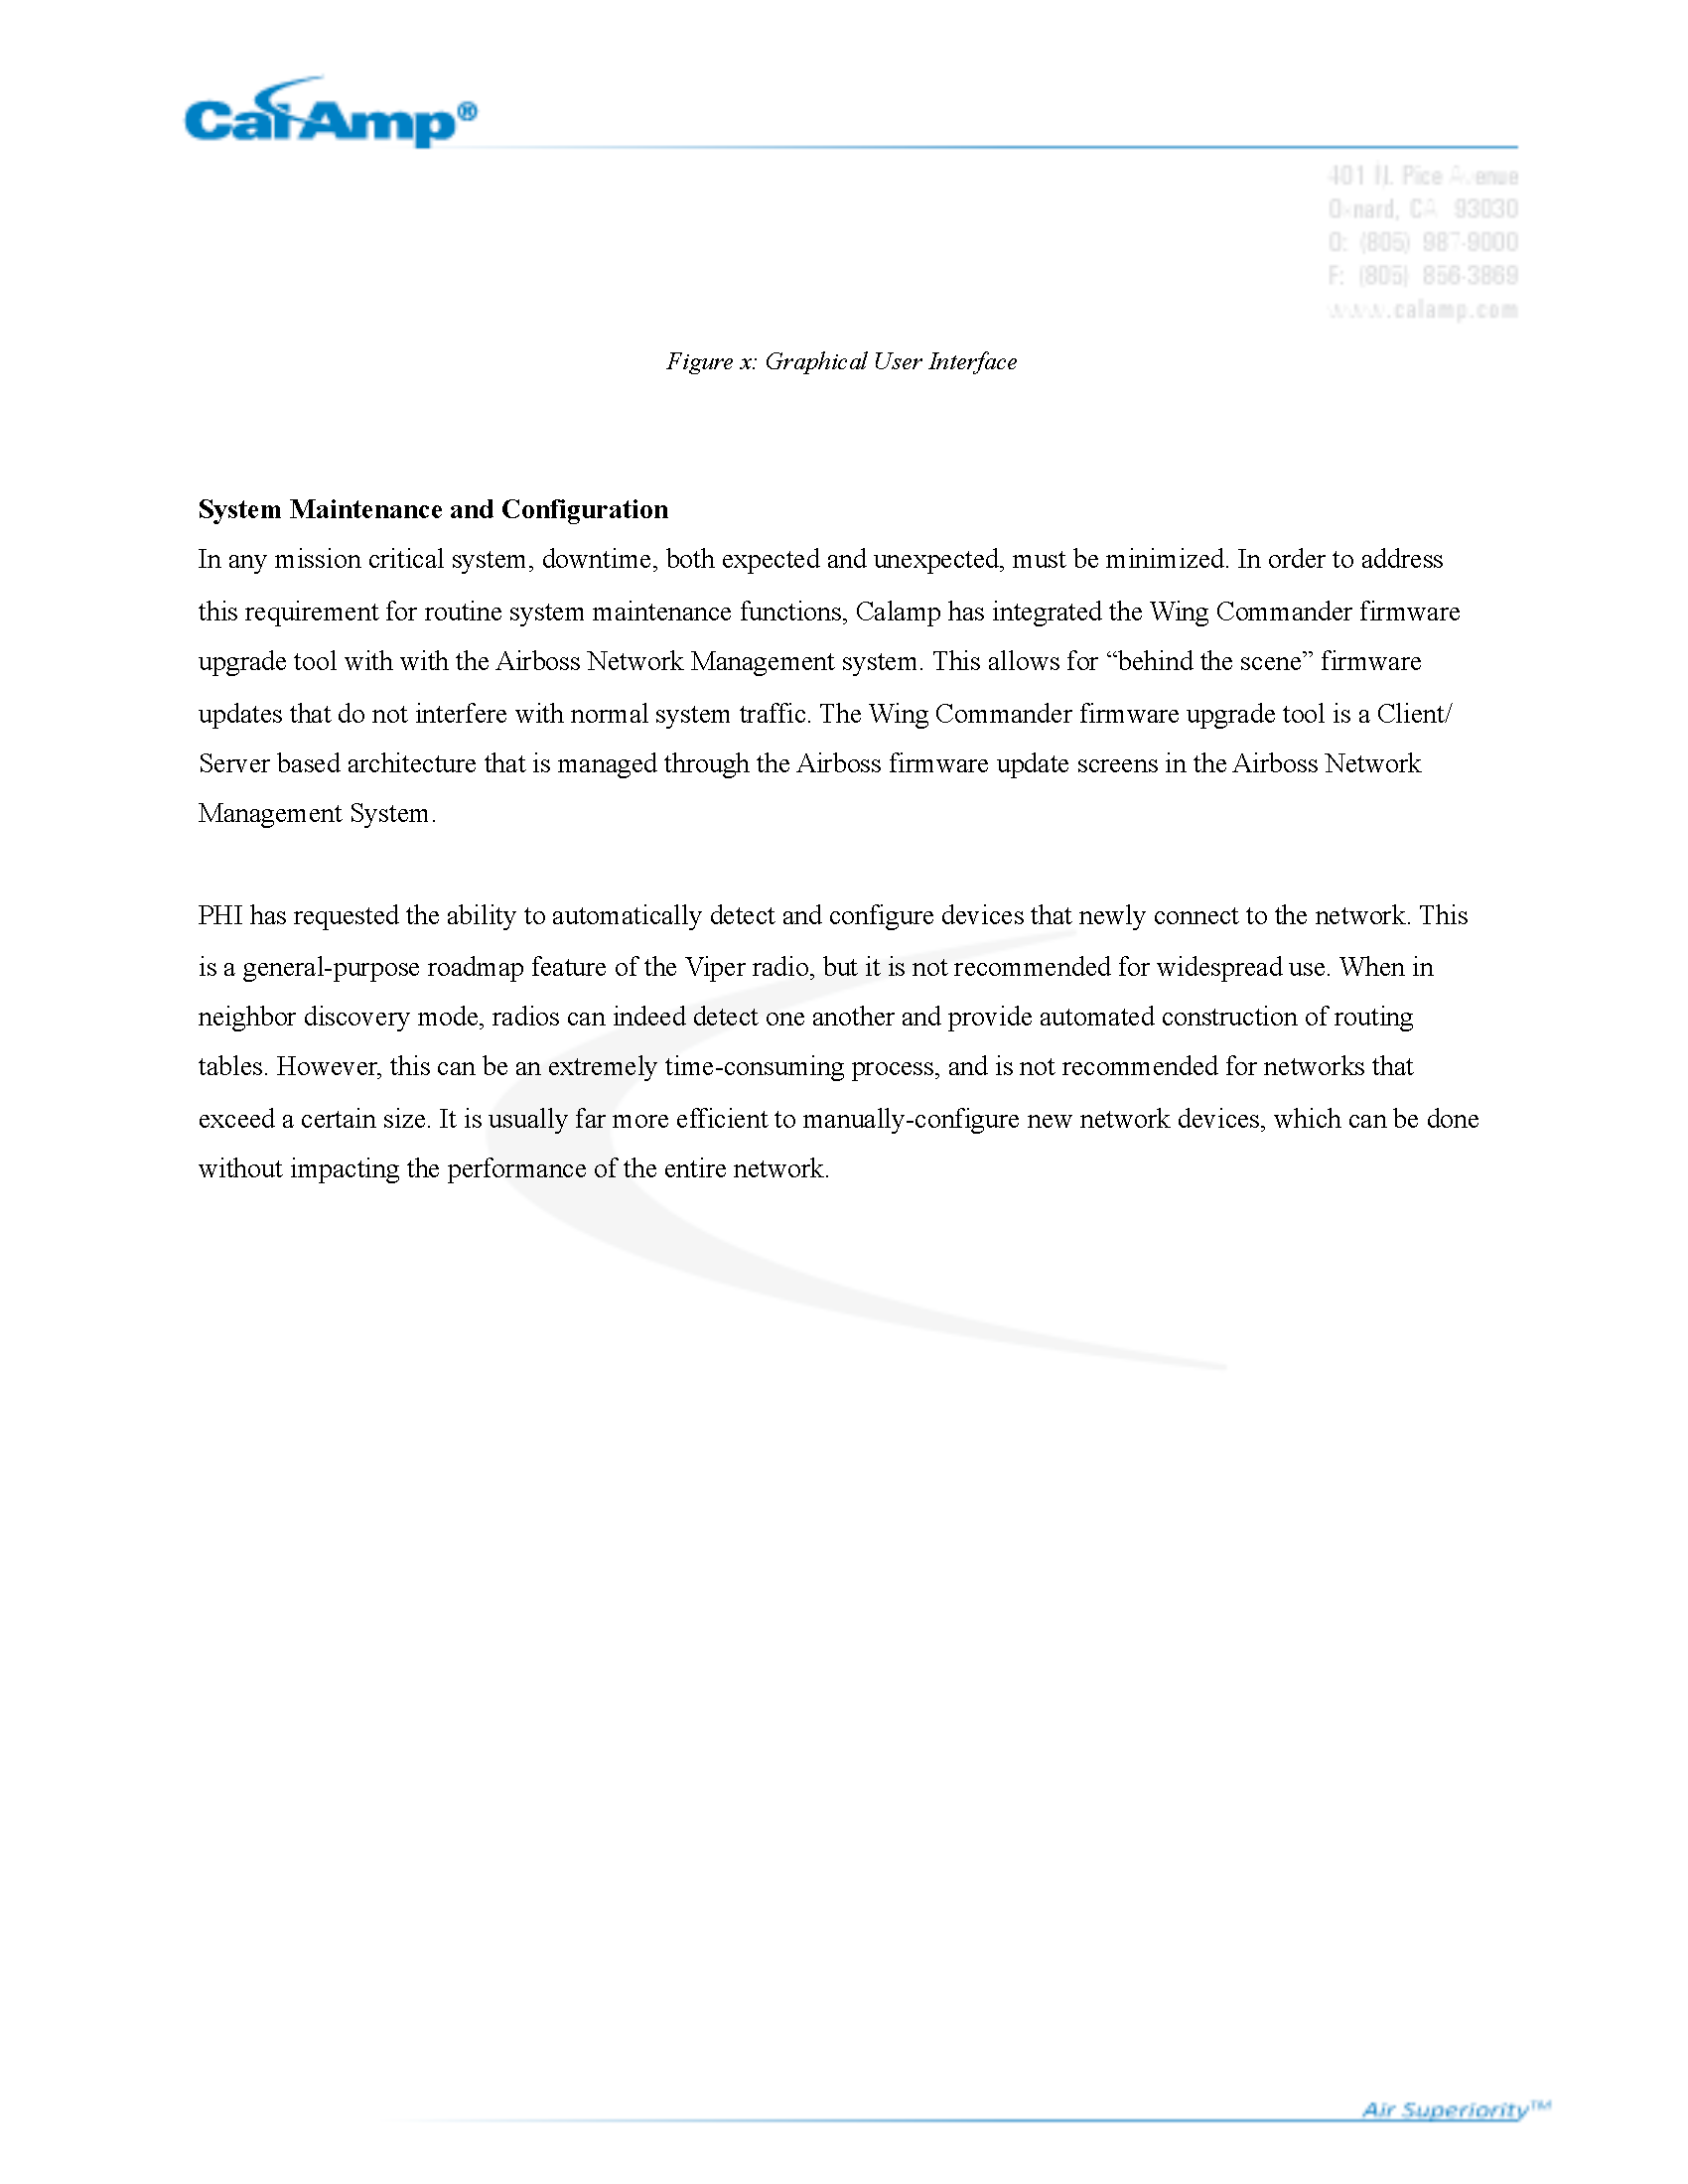 Calamp Network Management Services_Page_8.png